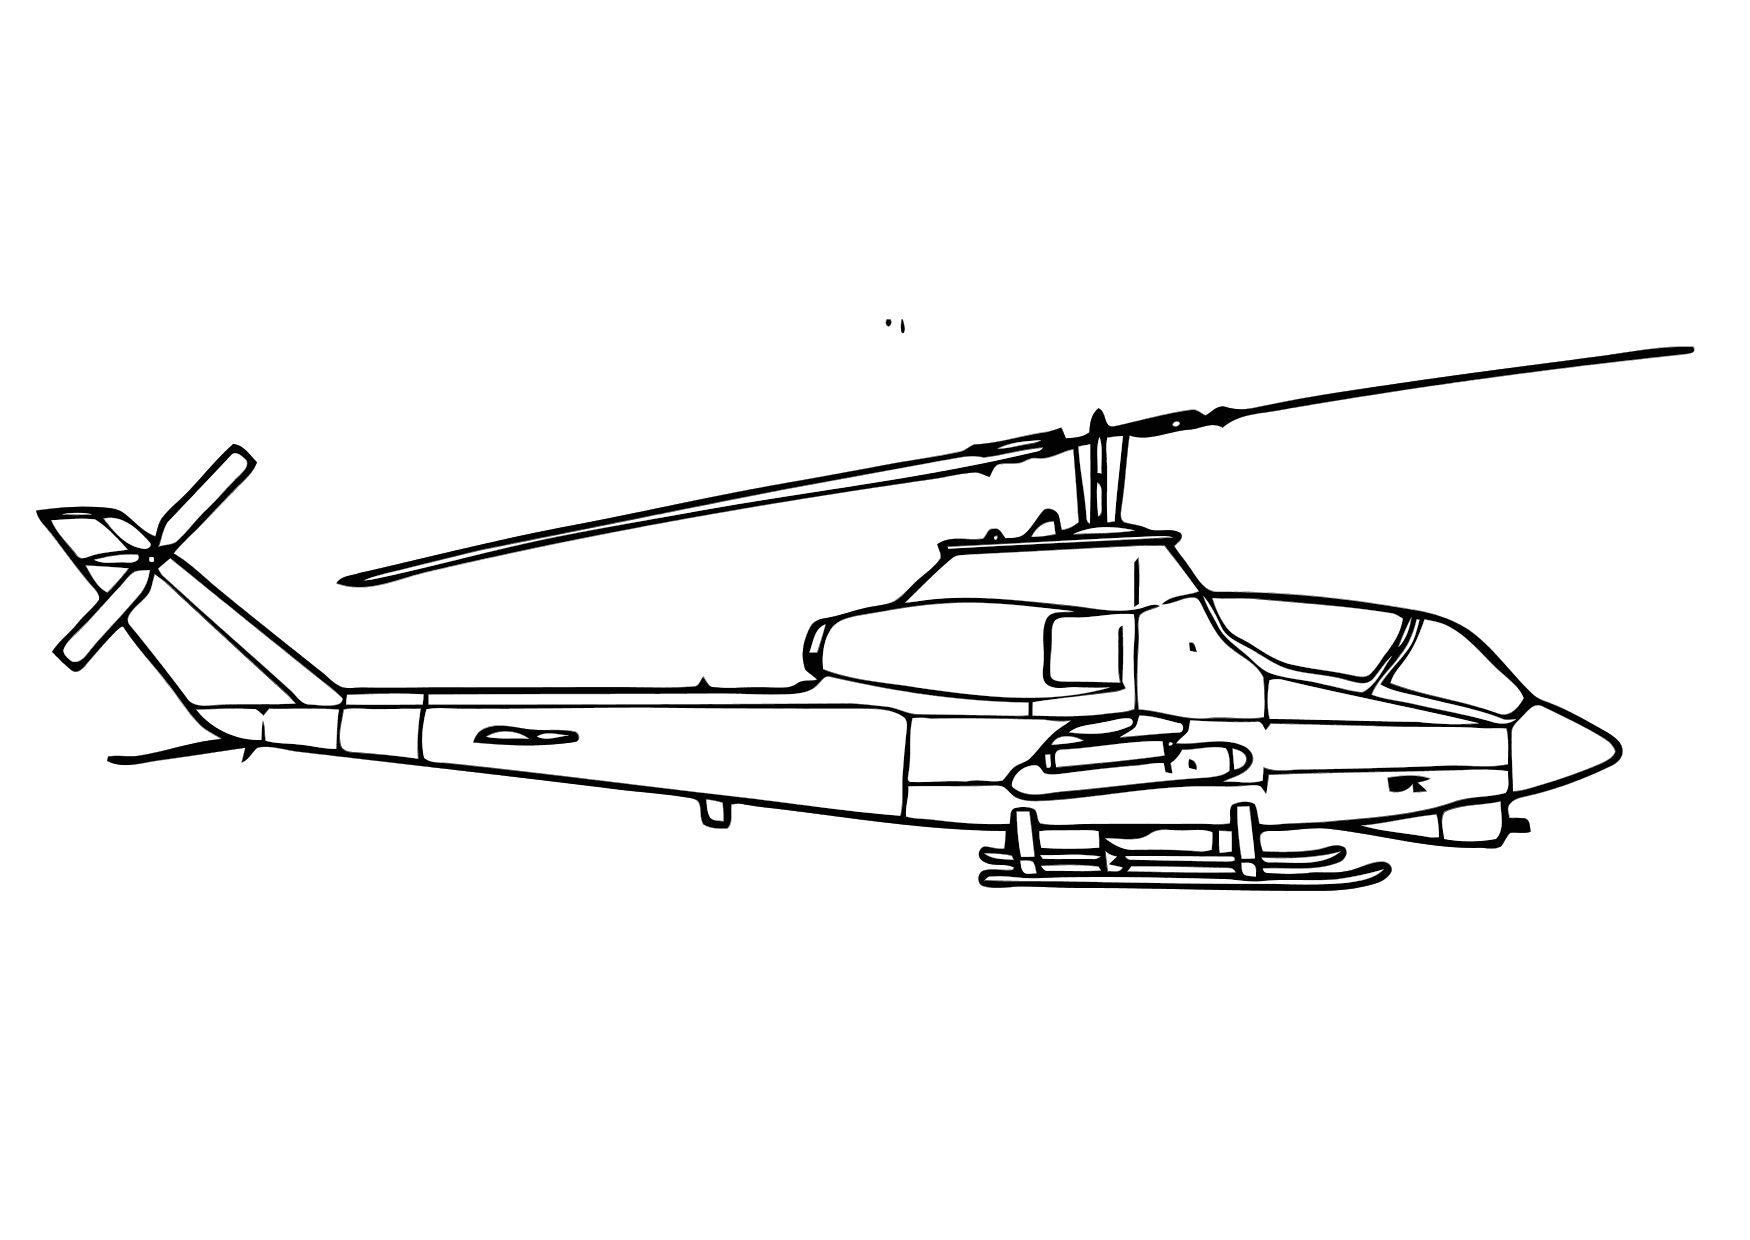 Neu Hubschrauber Ausmalen in 2020 Coloring pages for